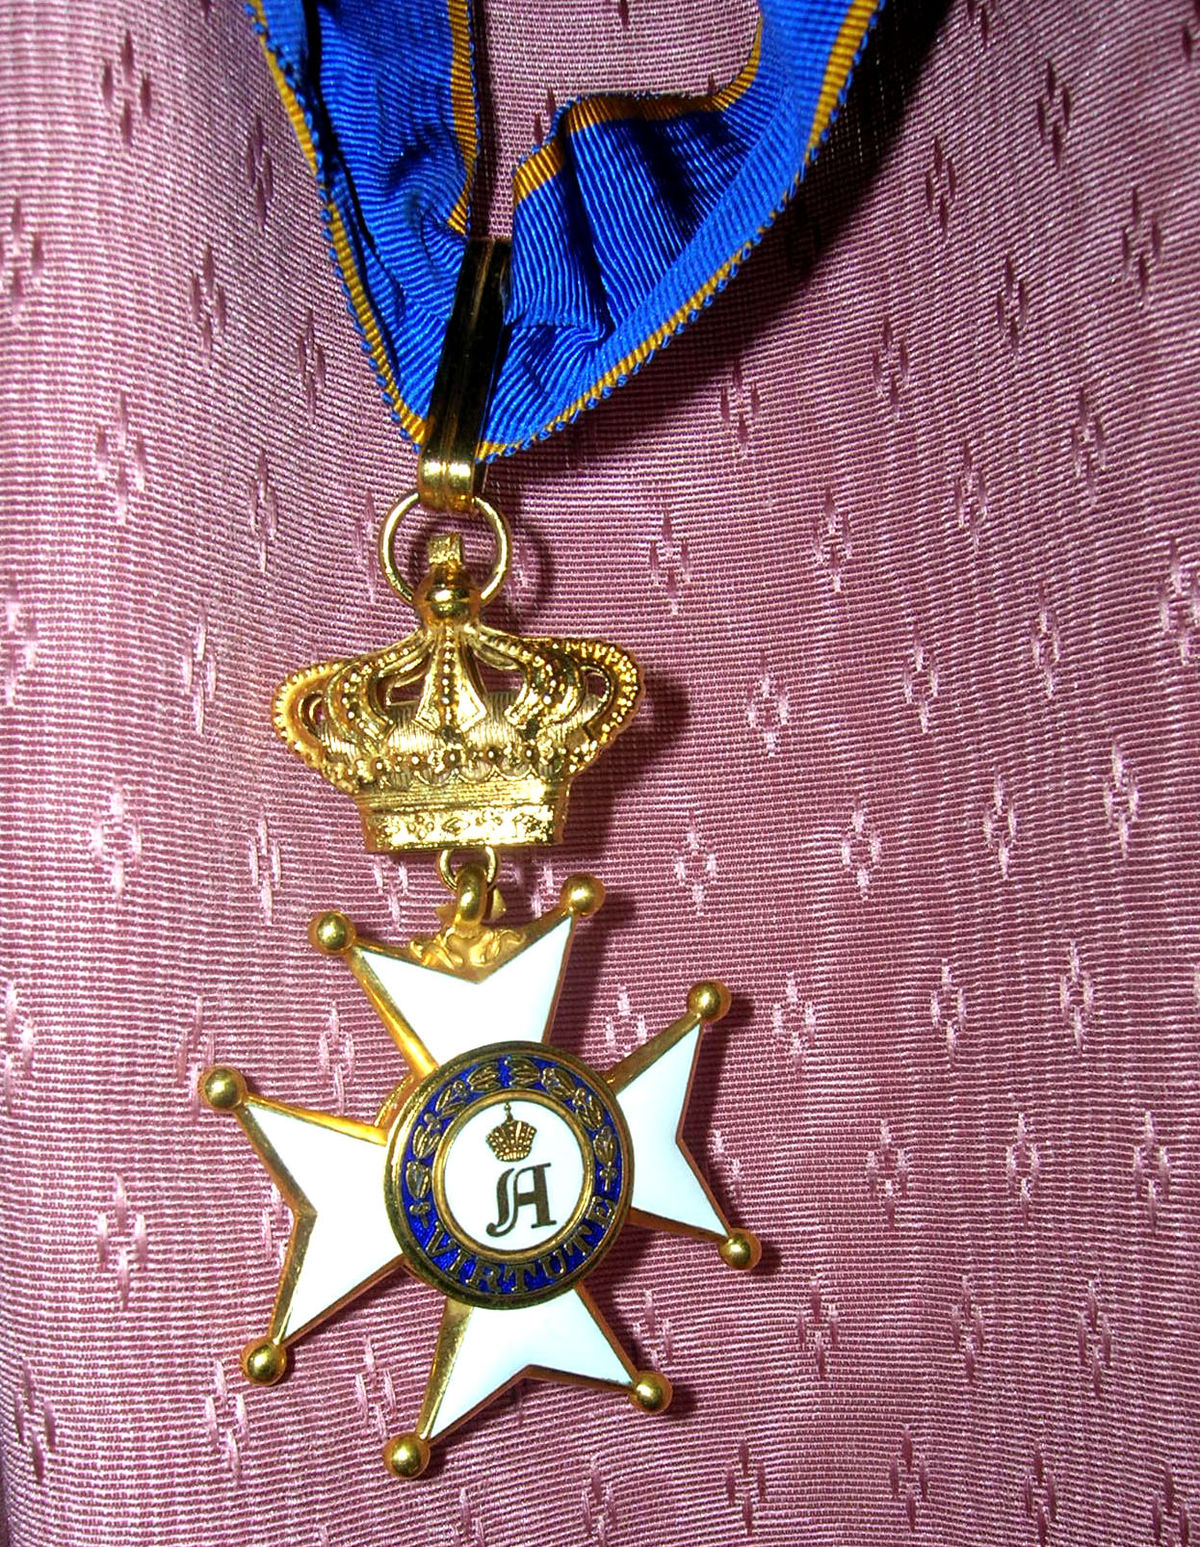 Who is depicted in the military order of Alexander Nevsky